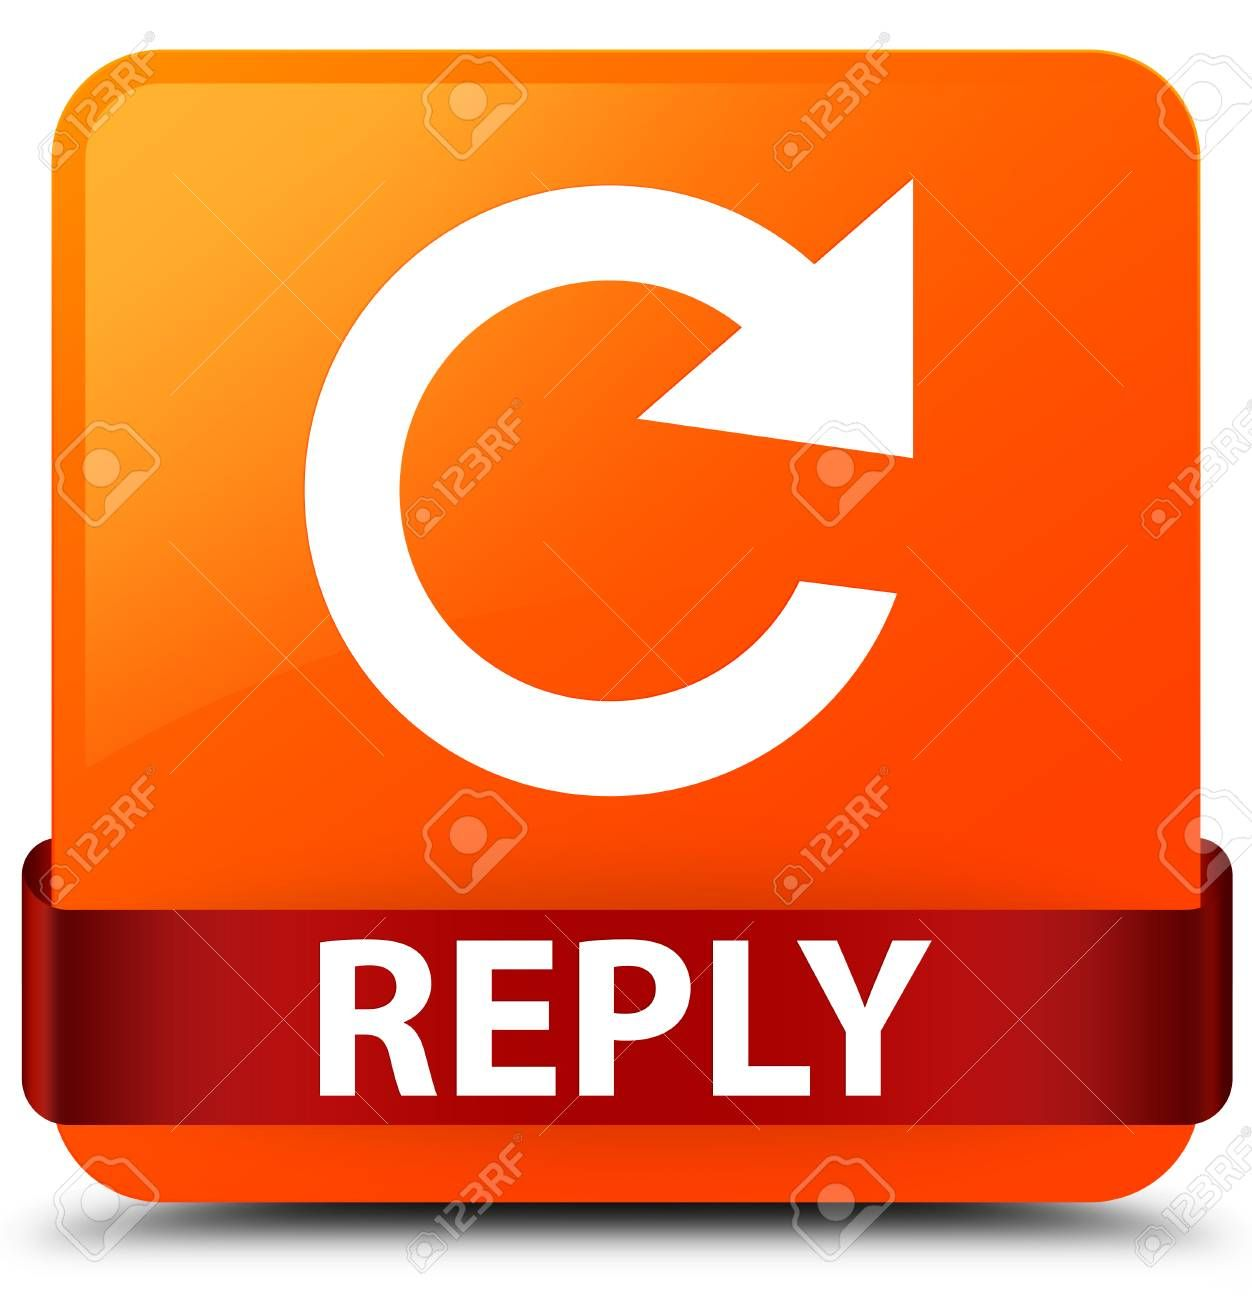 Reply Rotate Arrow Icon Isolated On Orange Square Button With Red Ribbon In Middle Abstract Illustration Spon Icon Isola Orange Square Red Ribbon Icon